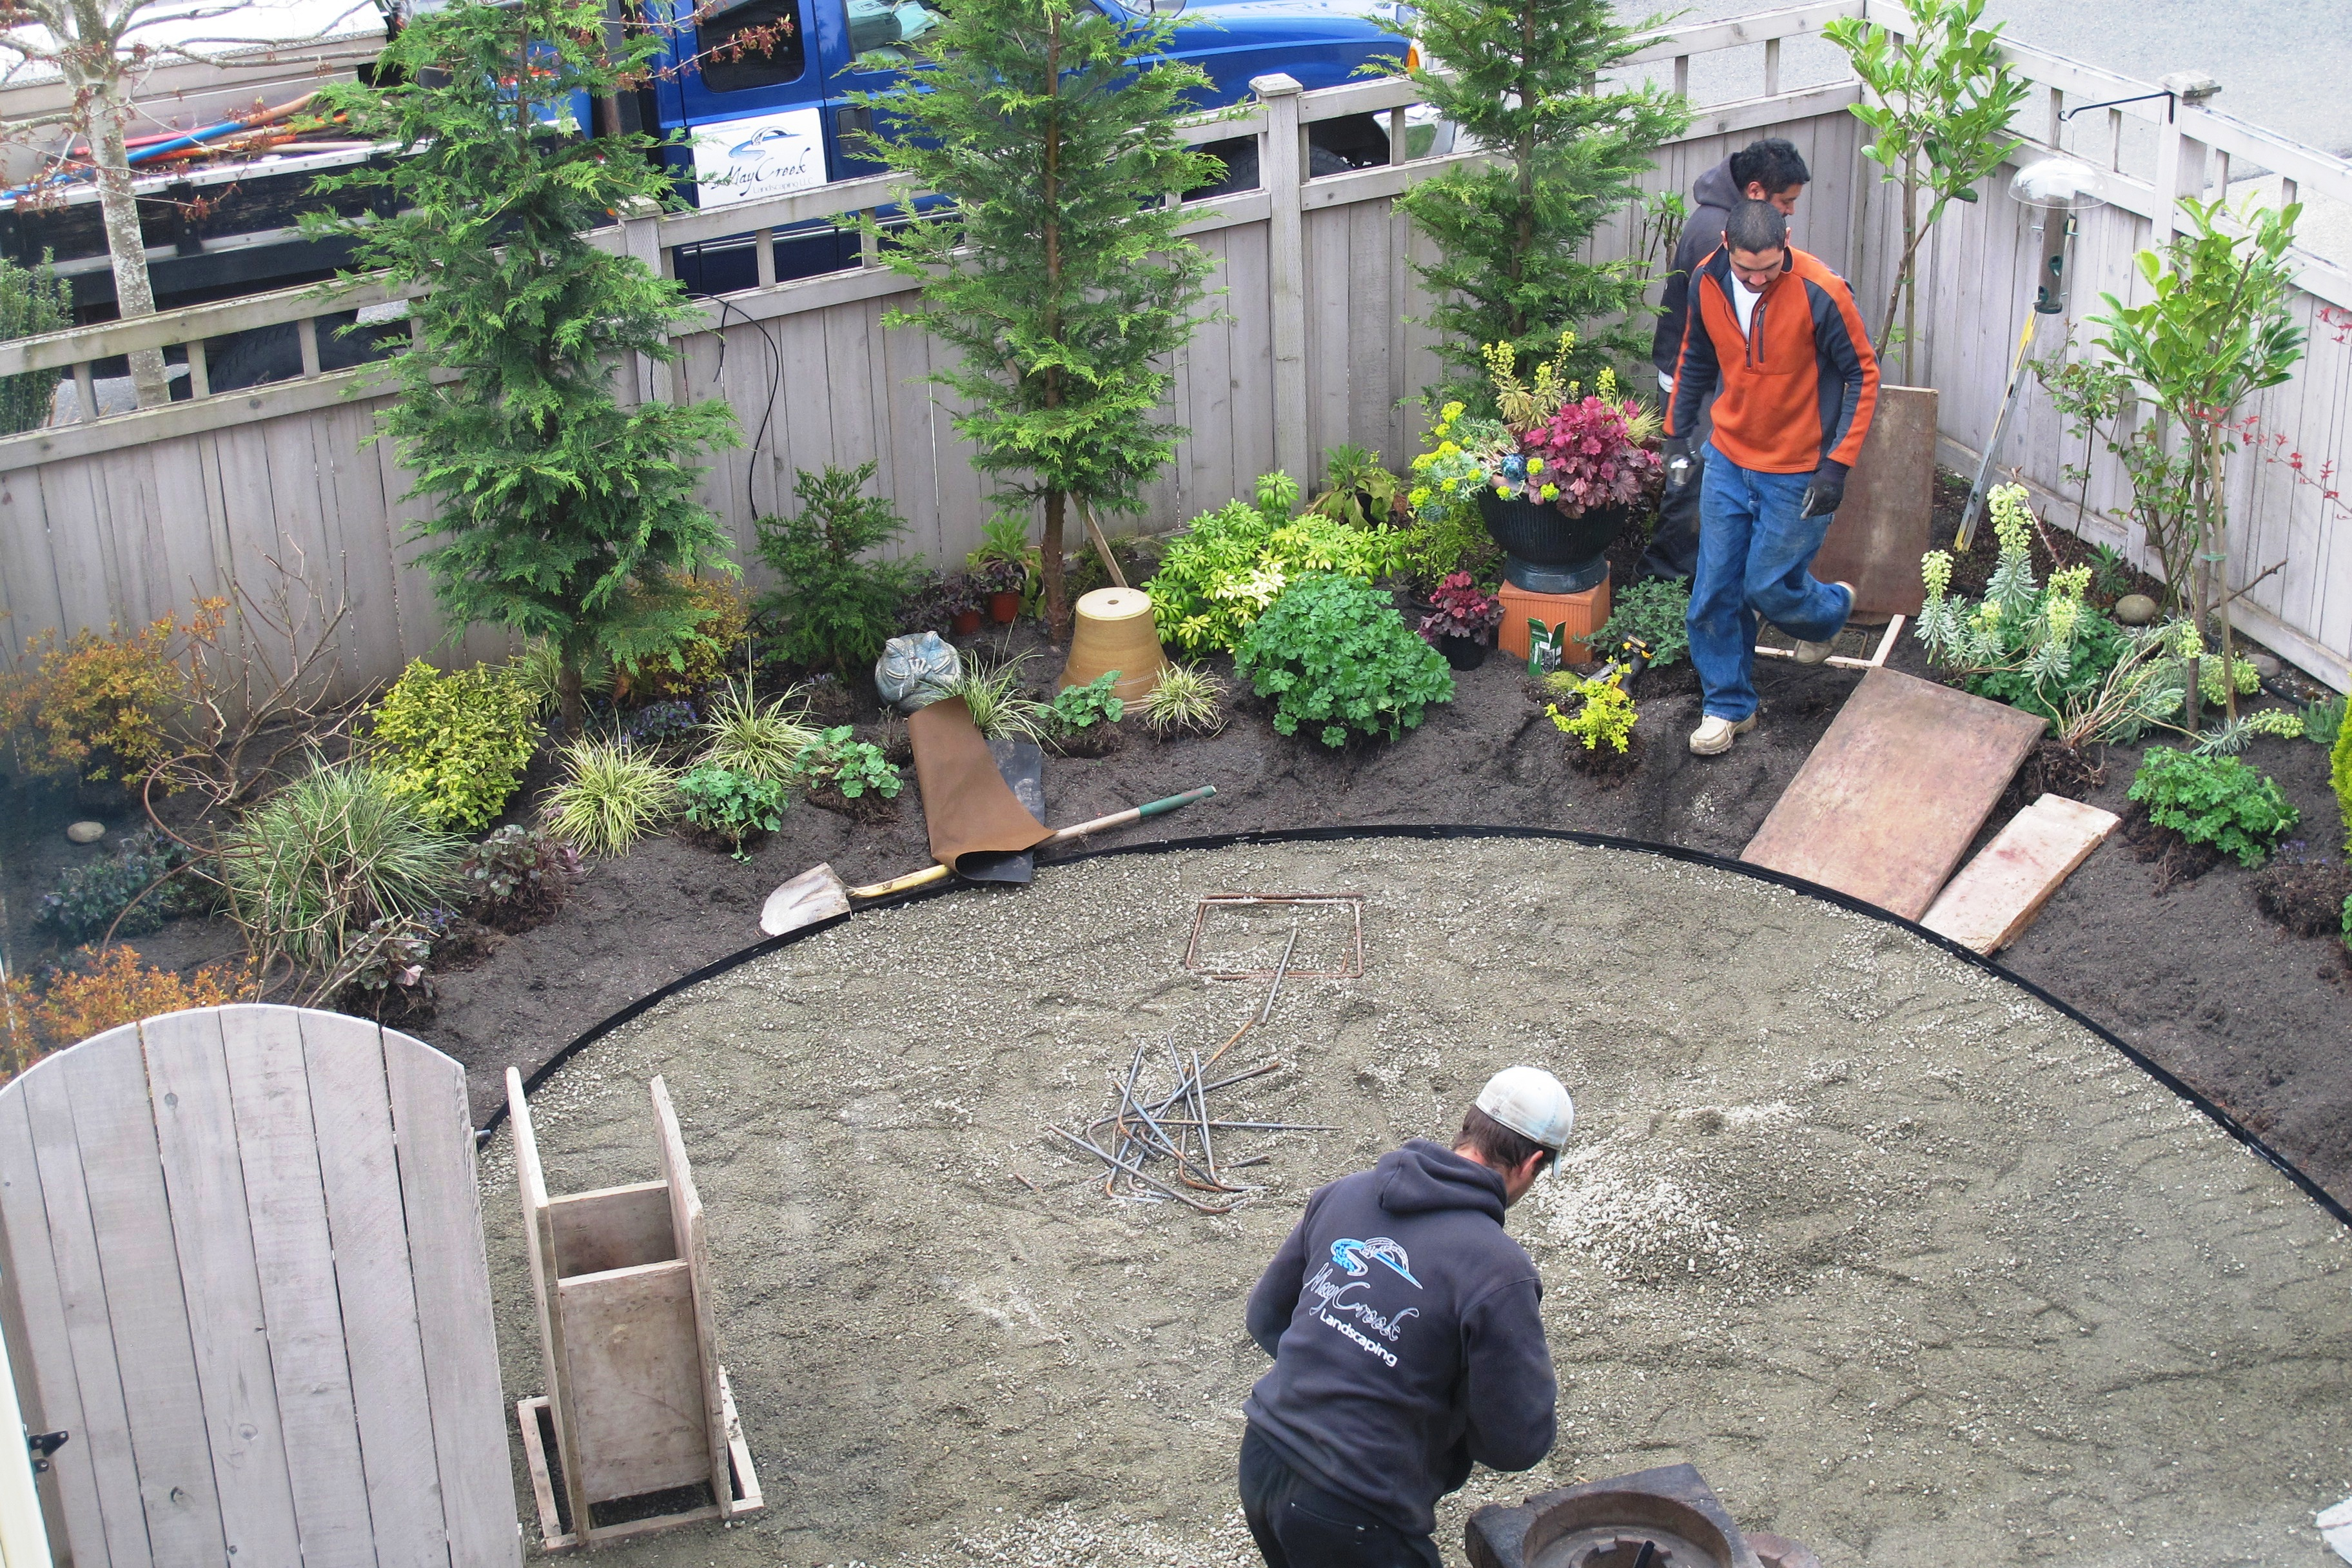 Cement Backyard Garden : Construction day one, 7 years in the making? no, waiting, yes, that